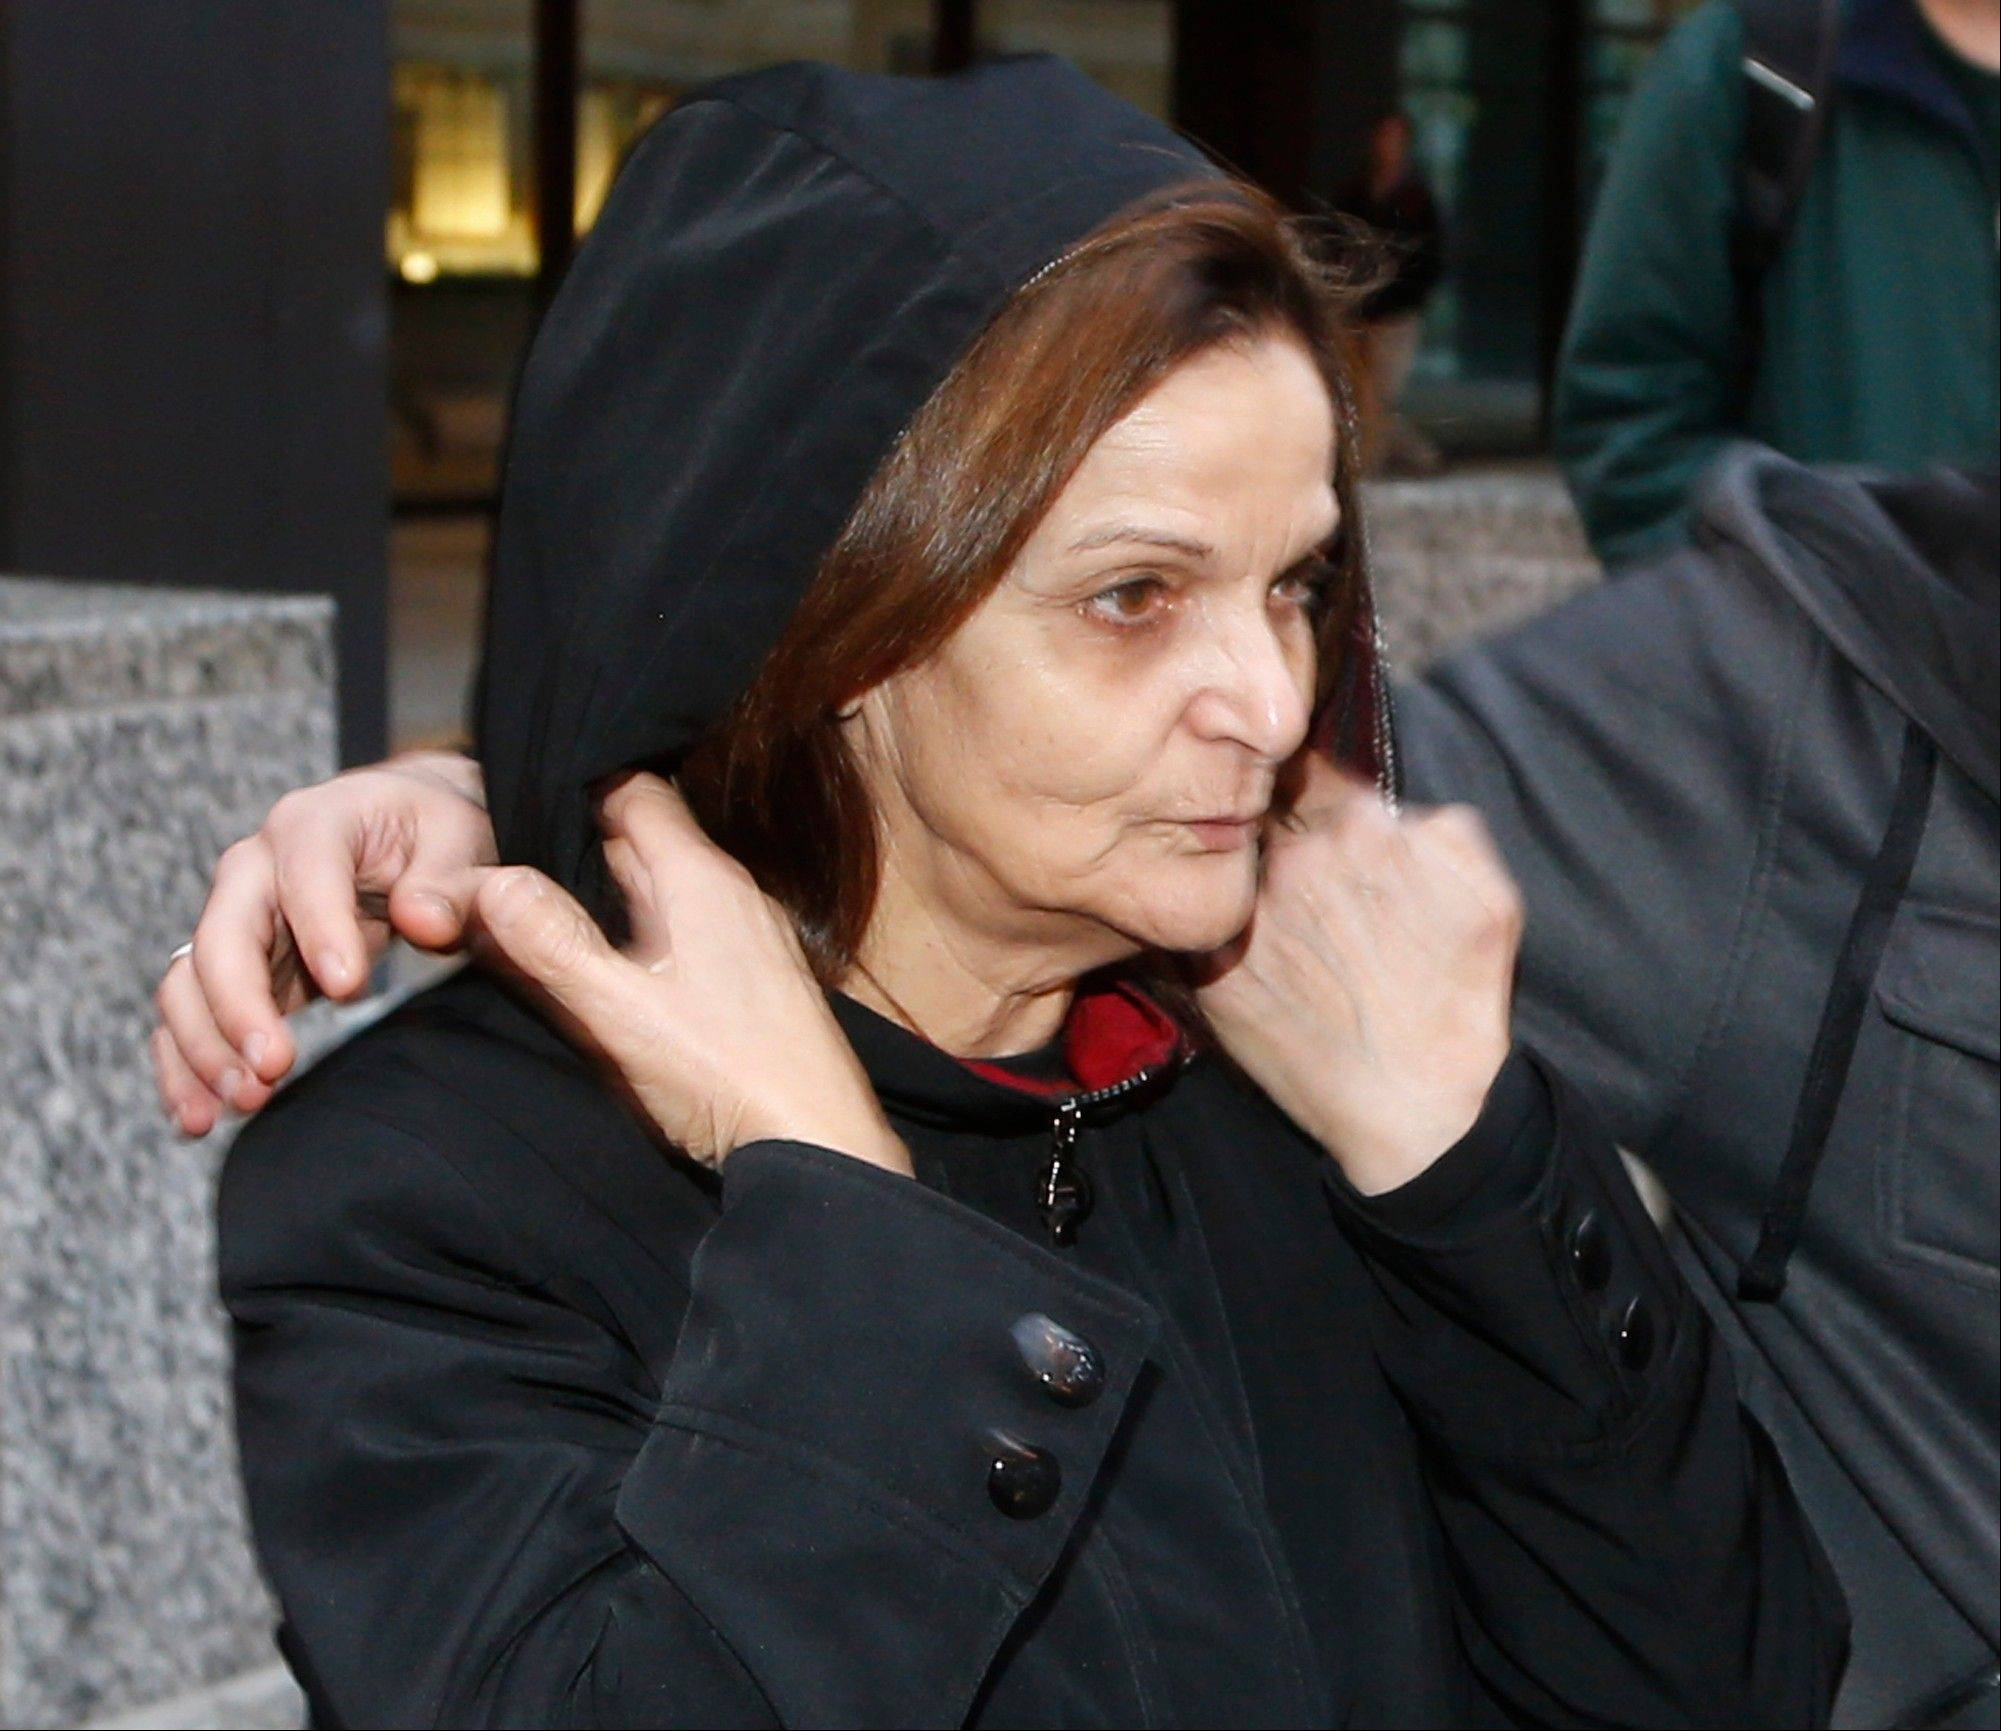 Rasmieh Yousef Odeh leaves the federal courthouse in Chicago after her initial appearance before U.S. Magistrate Judge Michael Mason. Odeh, 66, of Evergreen Park, was arrested Tuesday on charges she lied on immigration papers about her conviction for a deadly bombing more than 40 years ago in Israel.